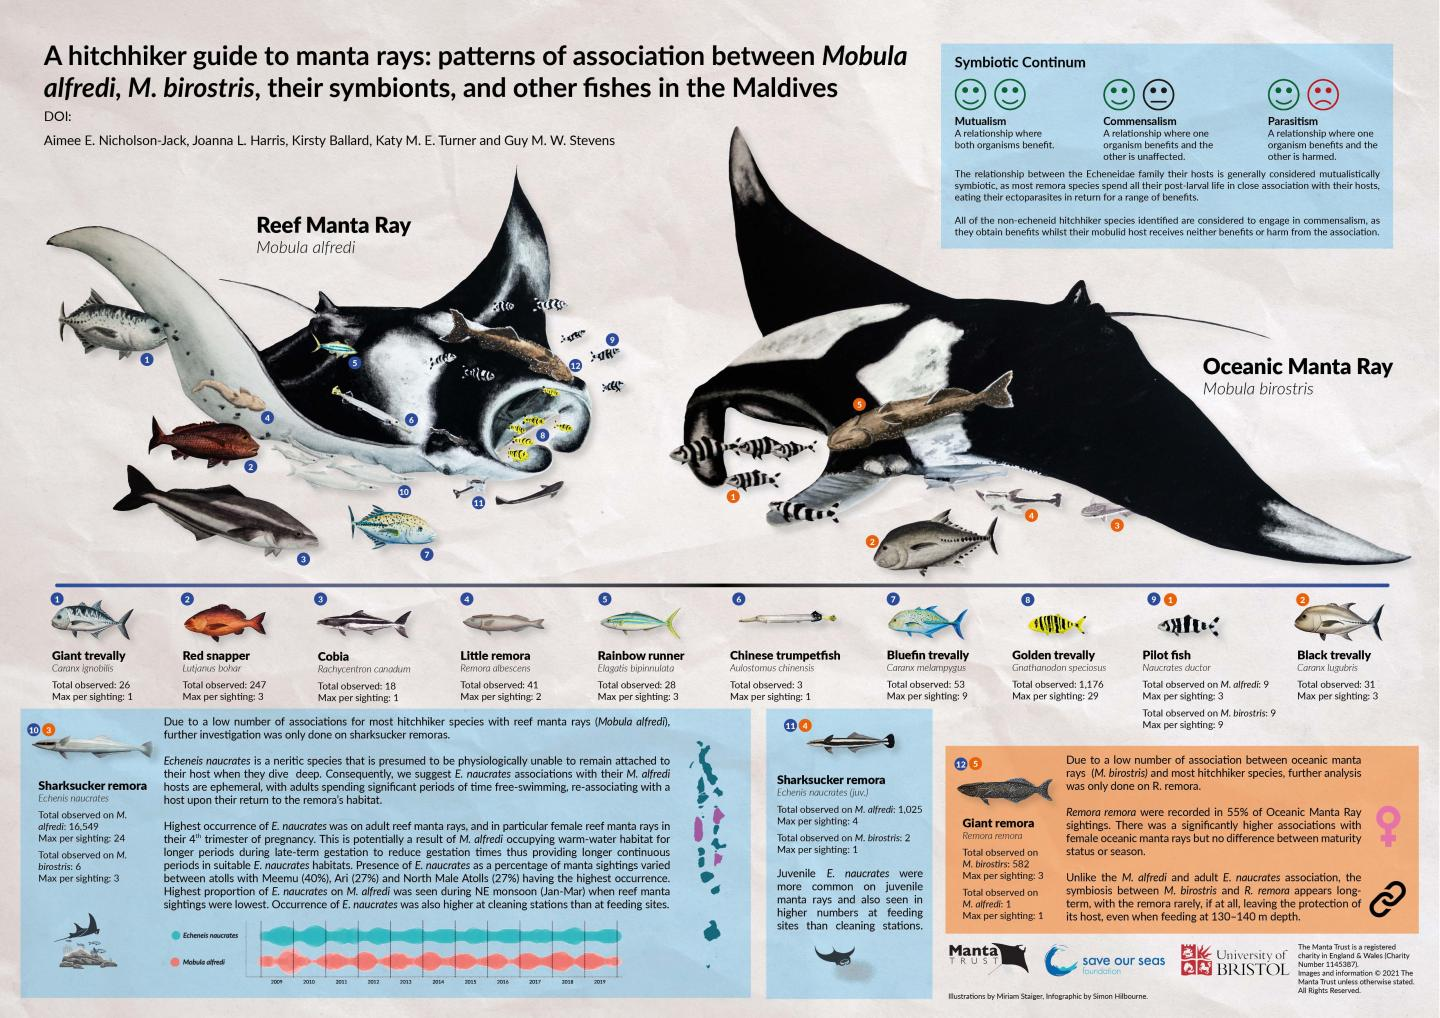 A Hitchhiker's Guide to Manta Rays